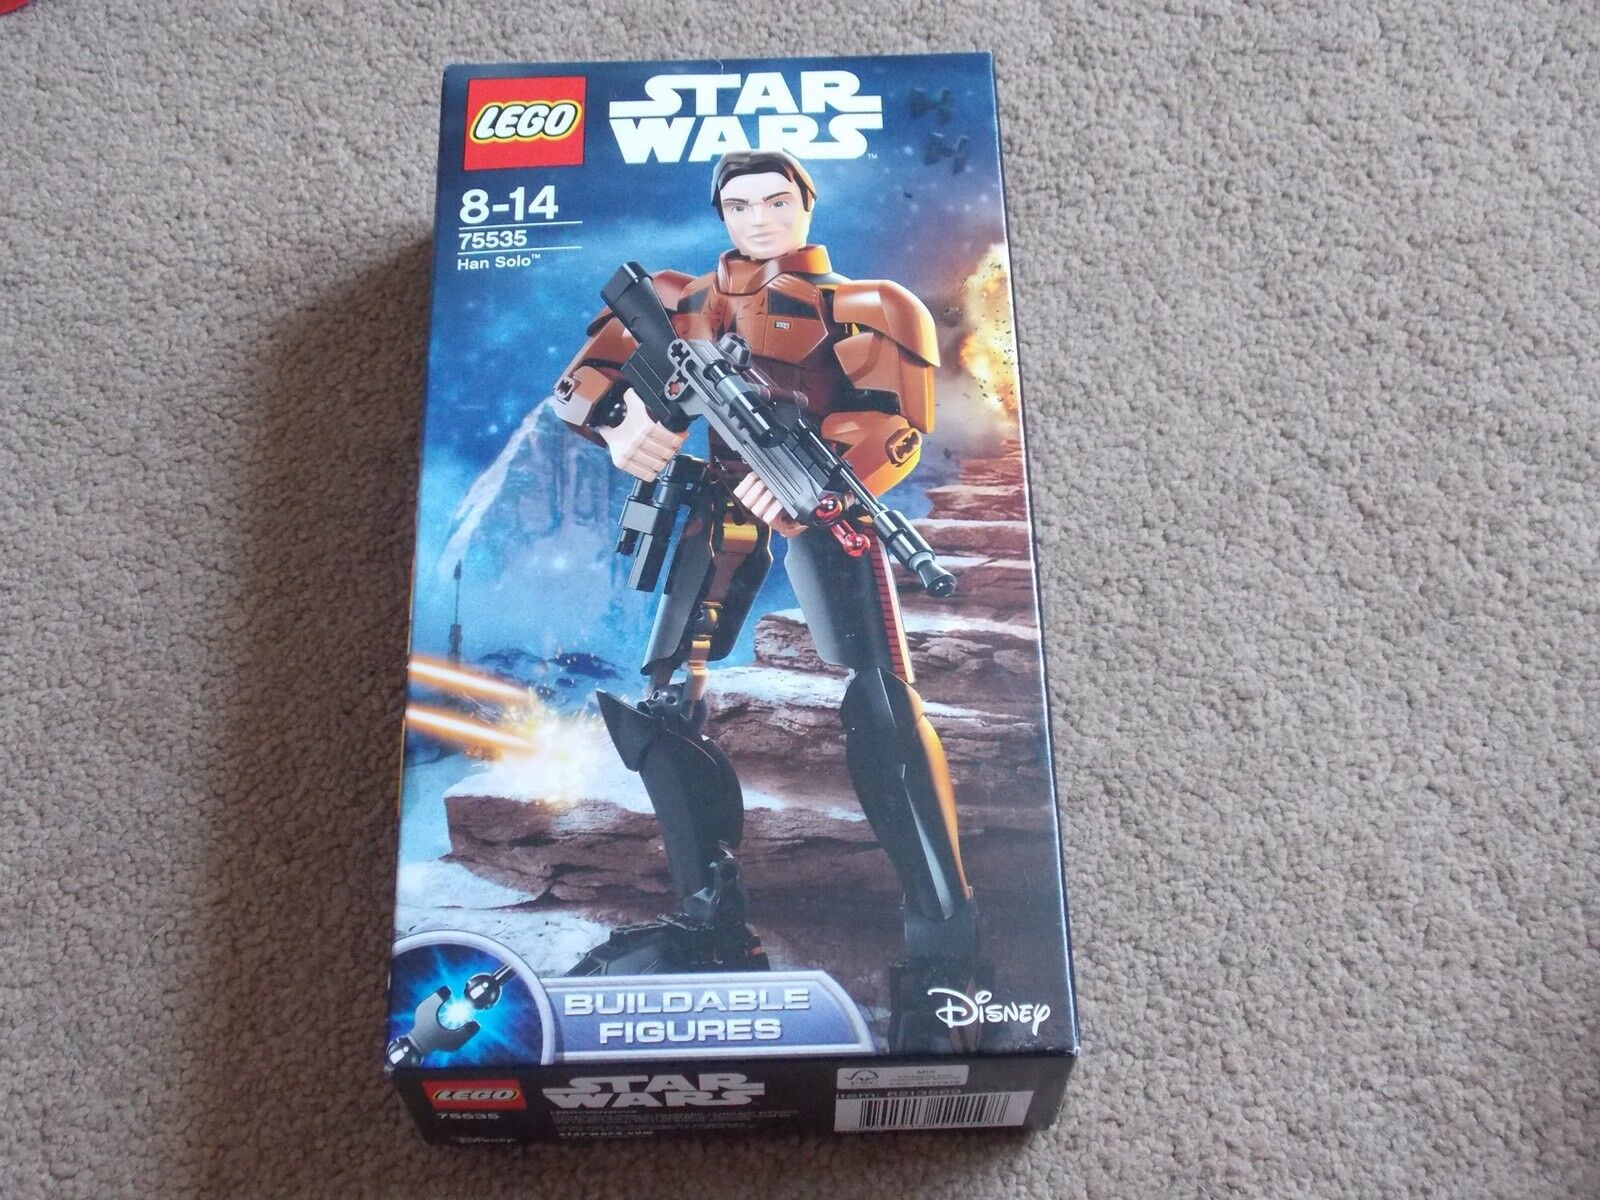 Lego-Disney Star Wars (Set 75535-Han Solo) BRAND NEW | La Mode